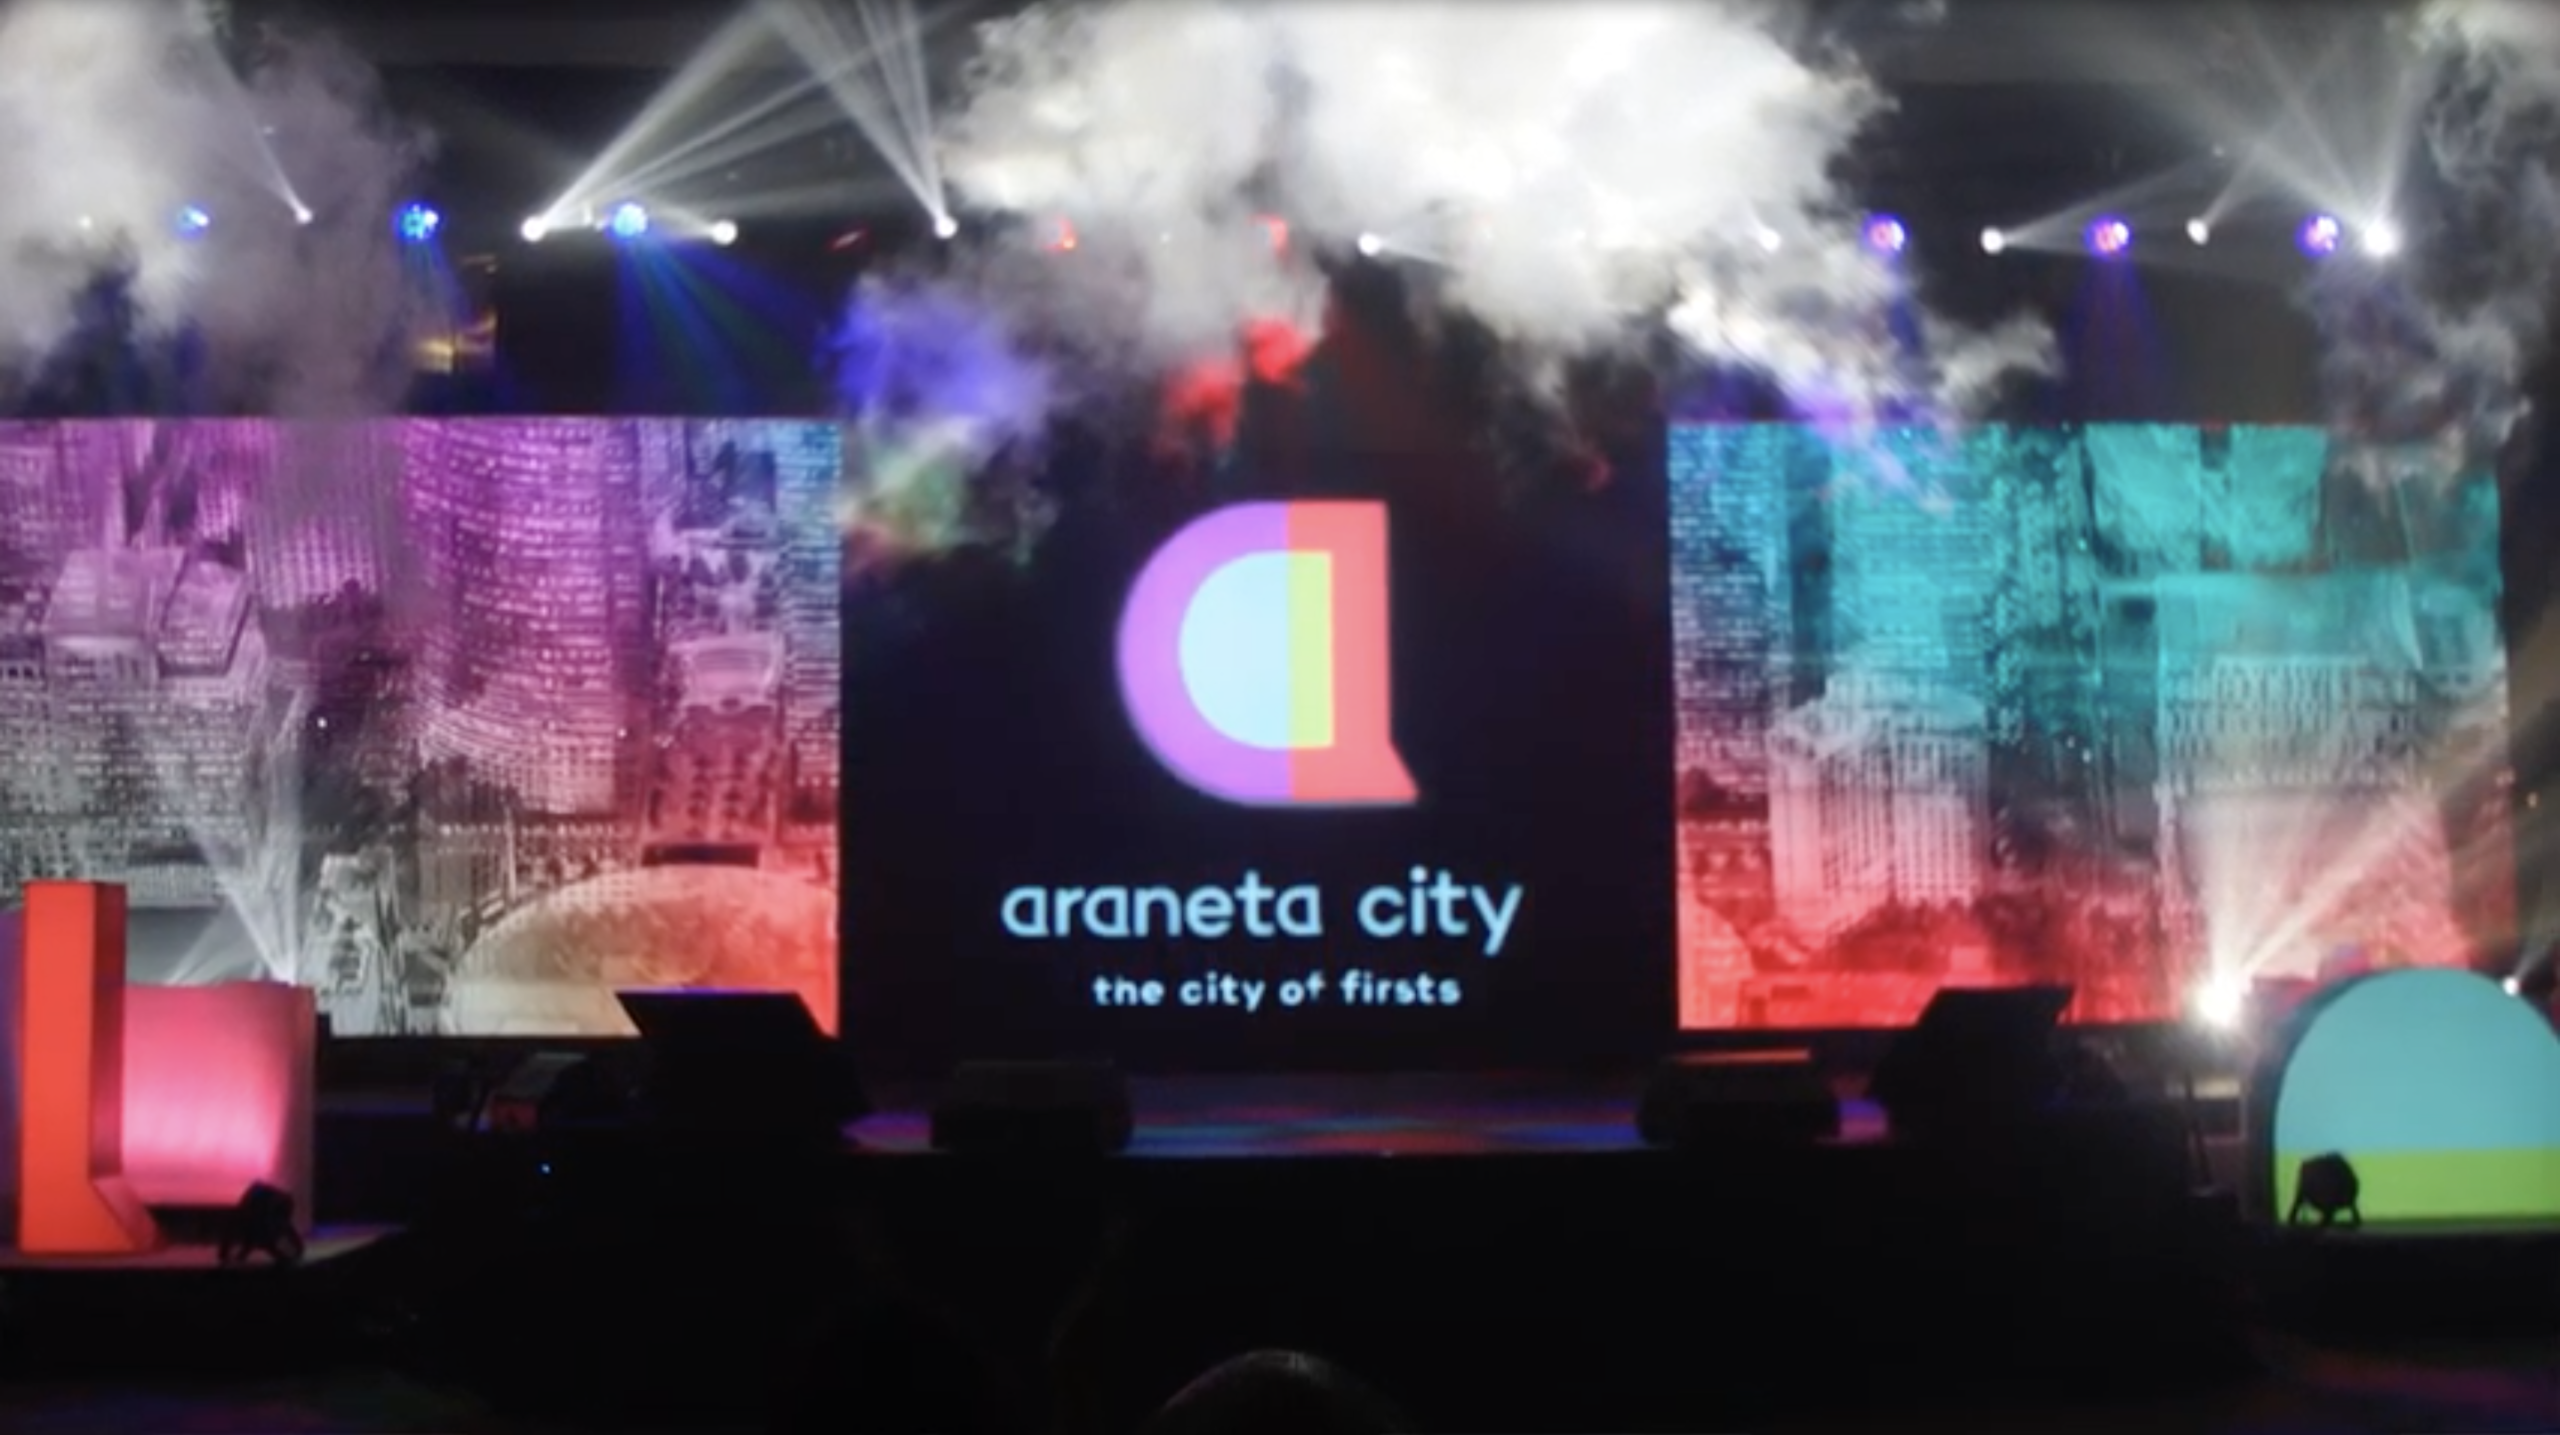 Araneta City commits COVID-19 Test Kits to QC Hospital